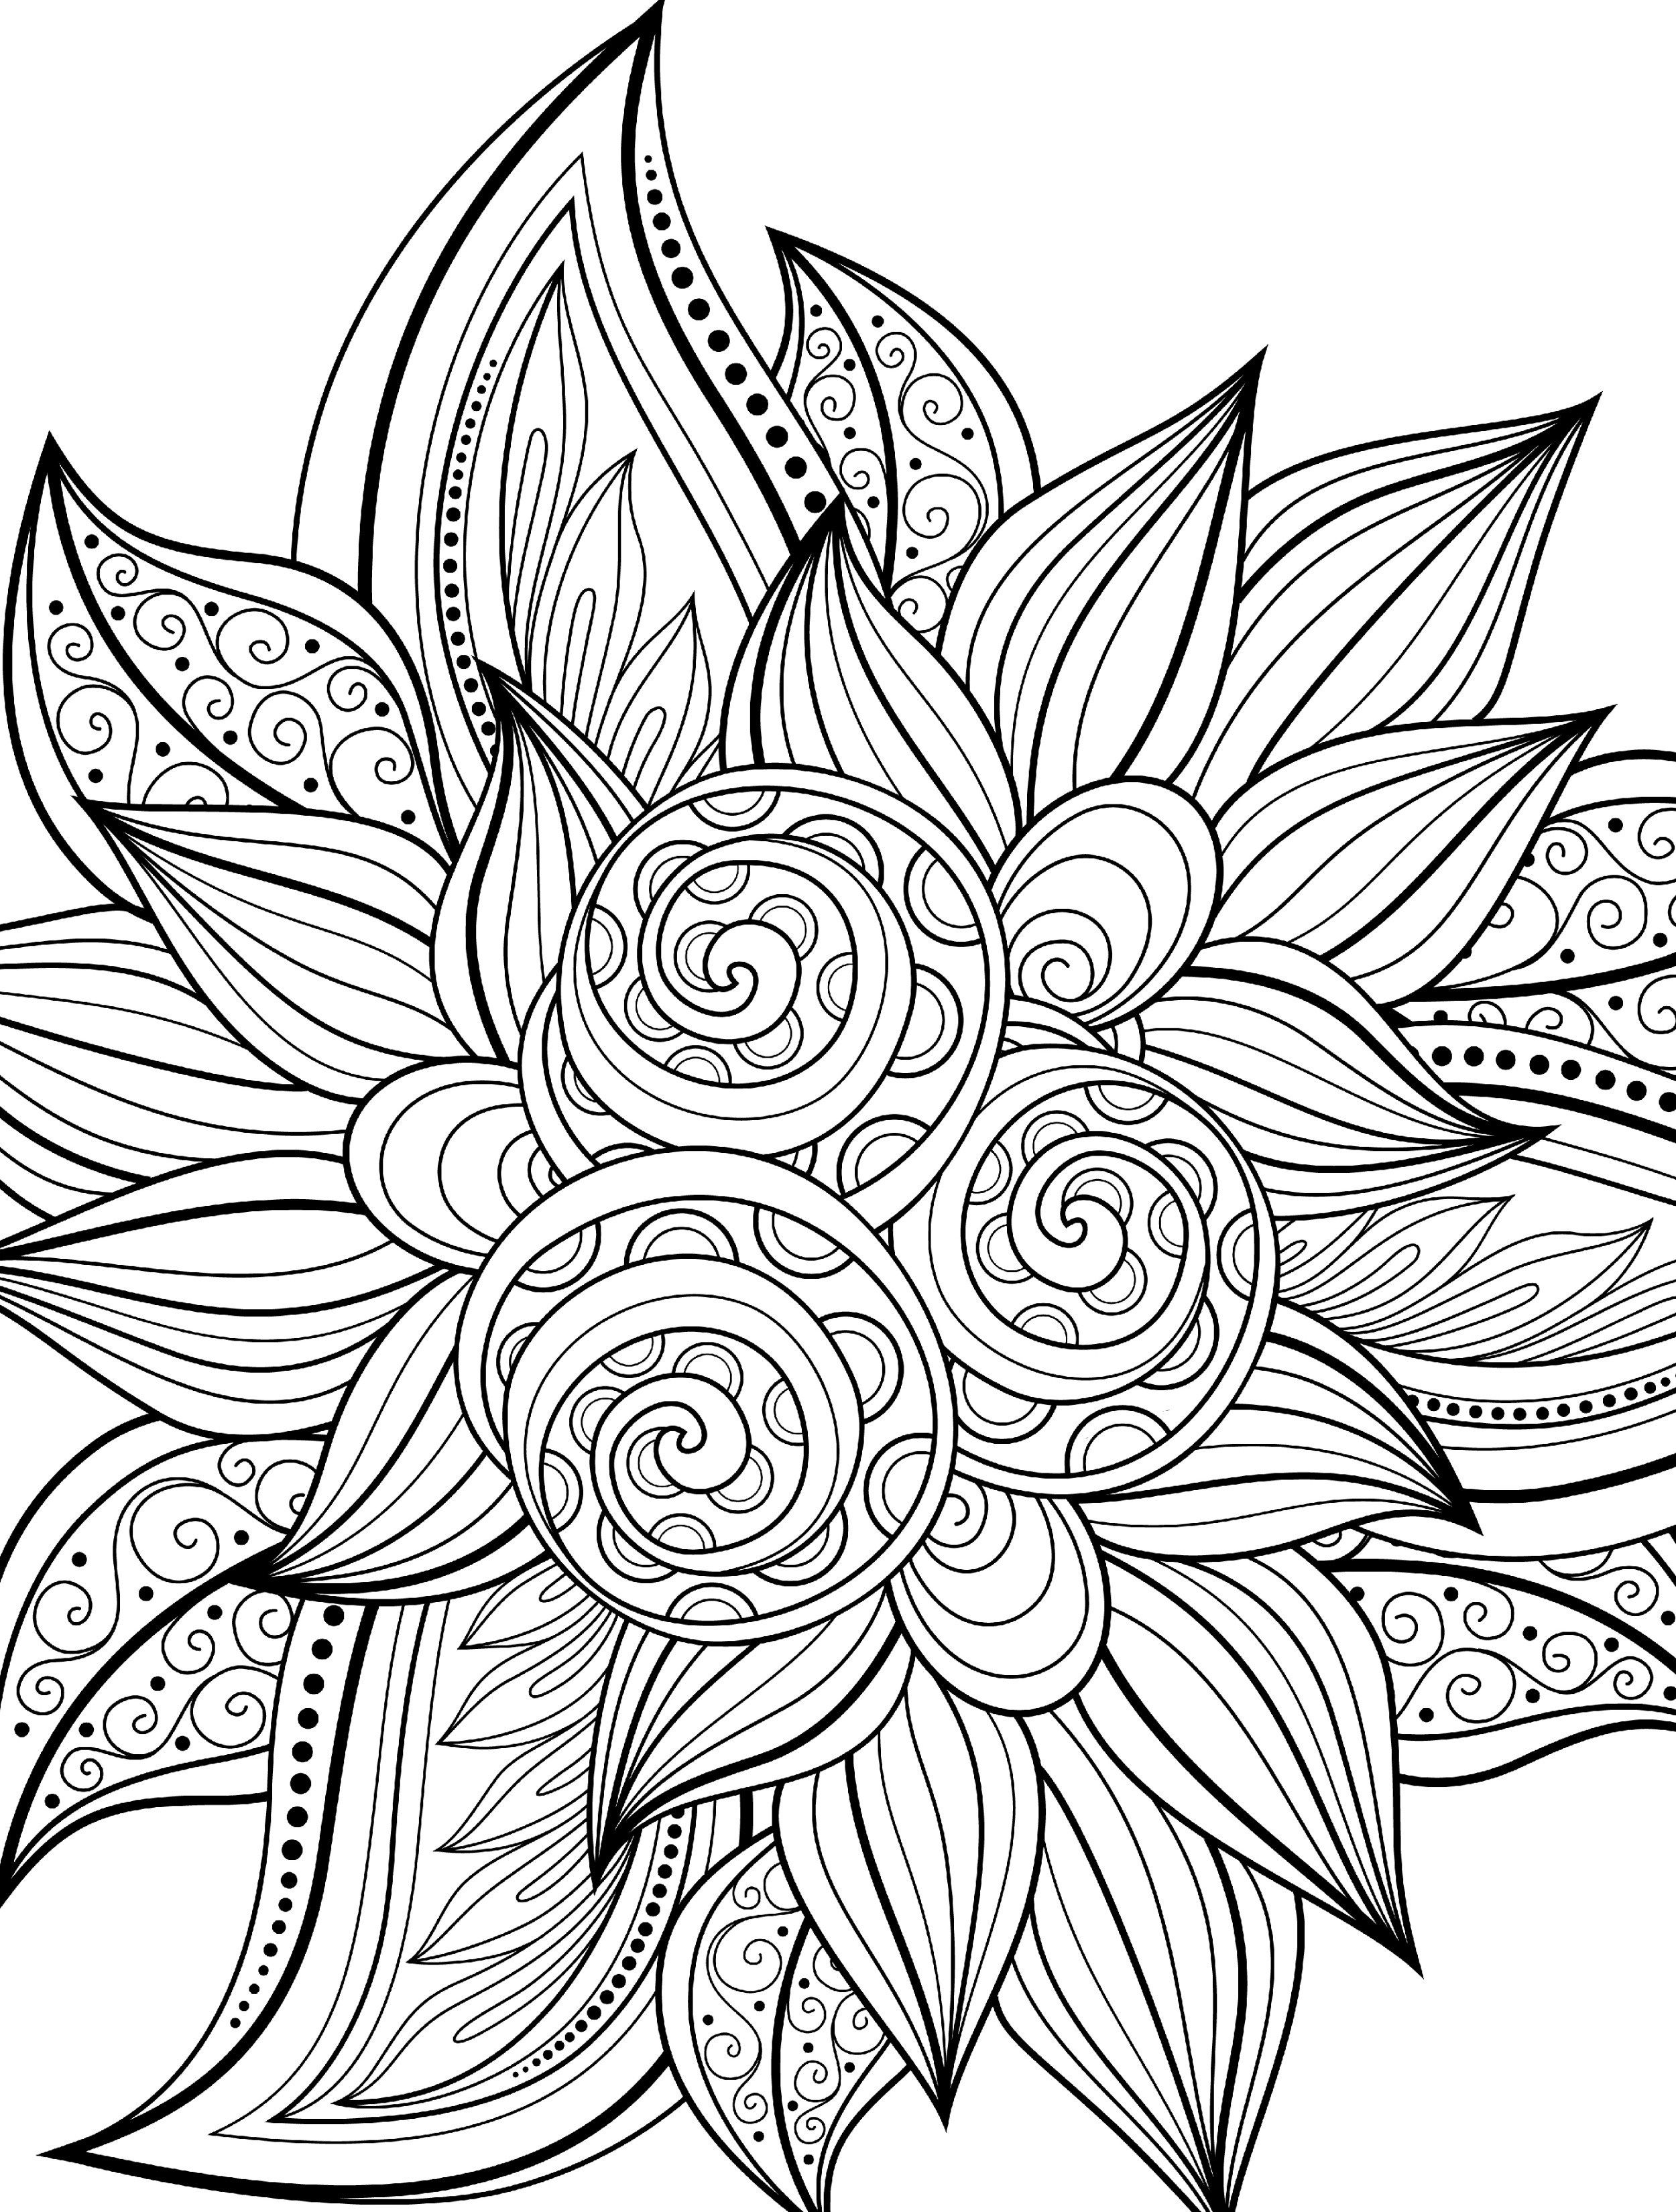 Printable drawing pages for adults - 10 Free Printable Holiday Adult Coloring Pages